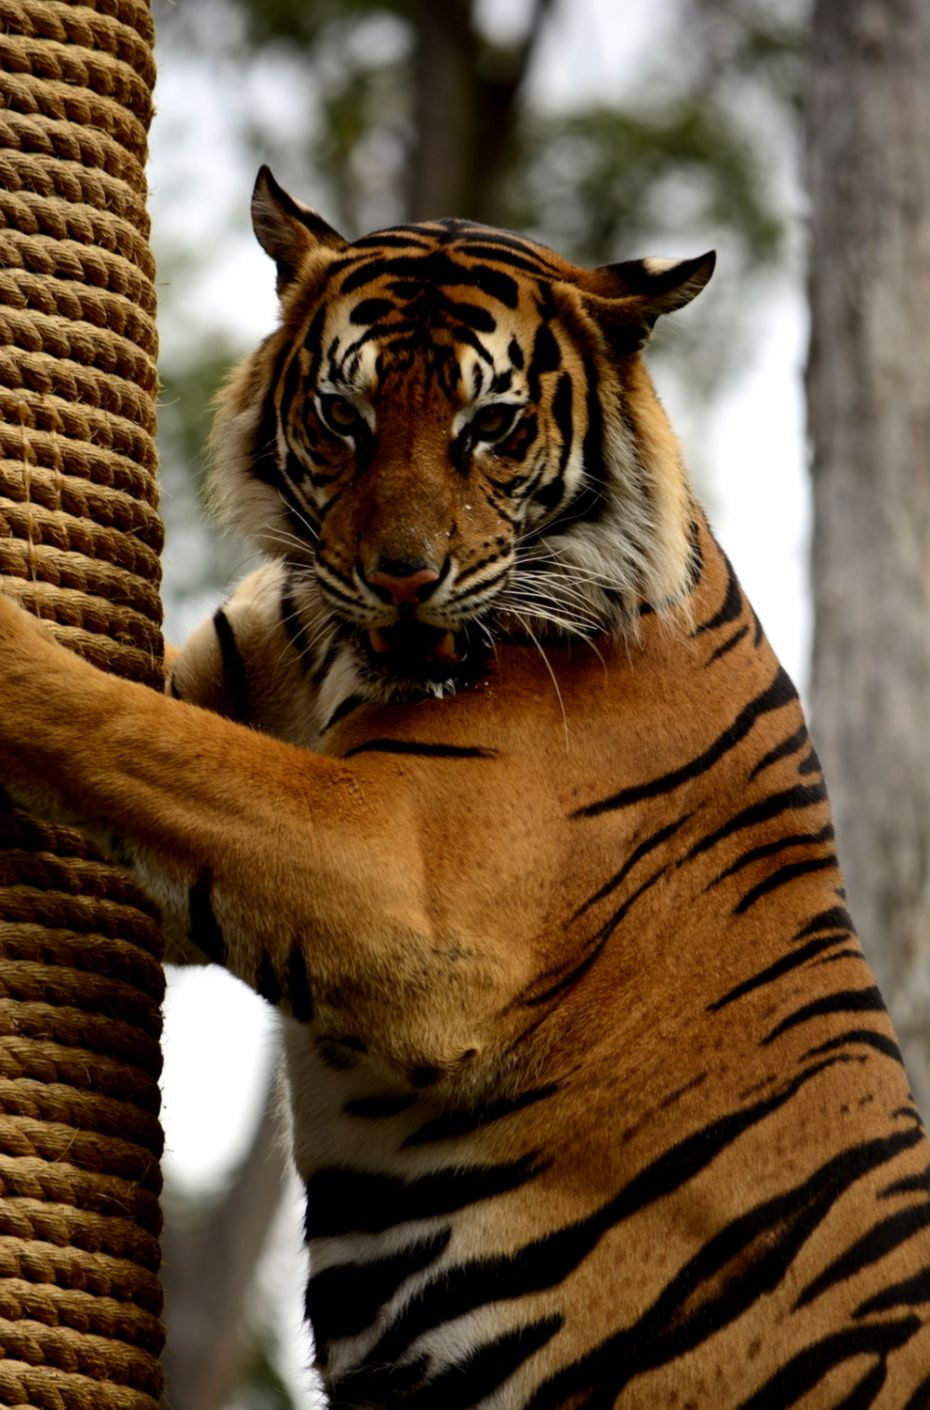 Tiger Pictures Download Free Images & Stock Photos on Unsplash